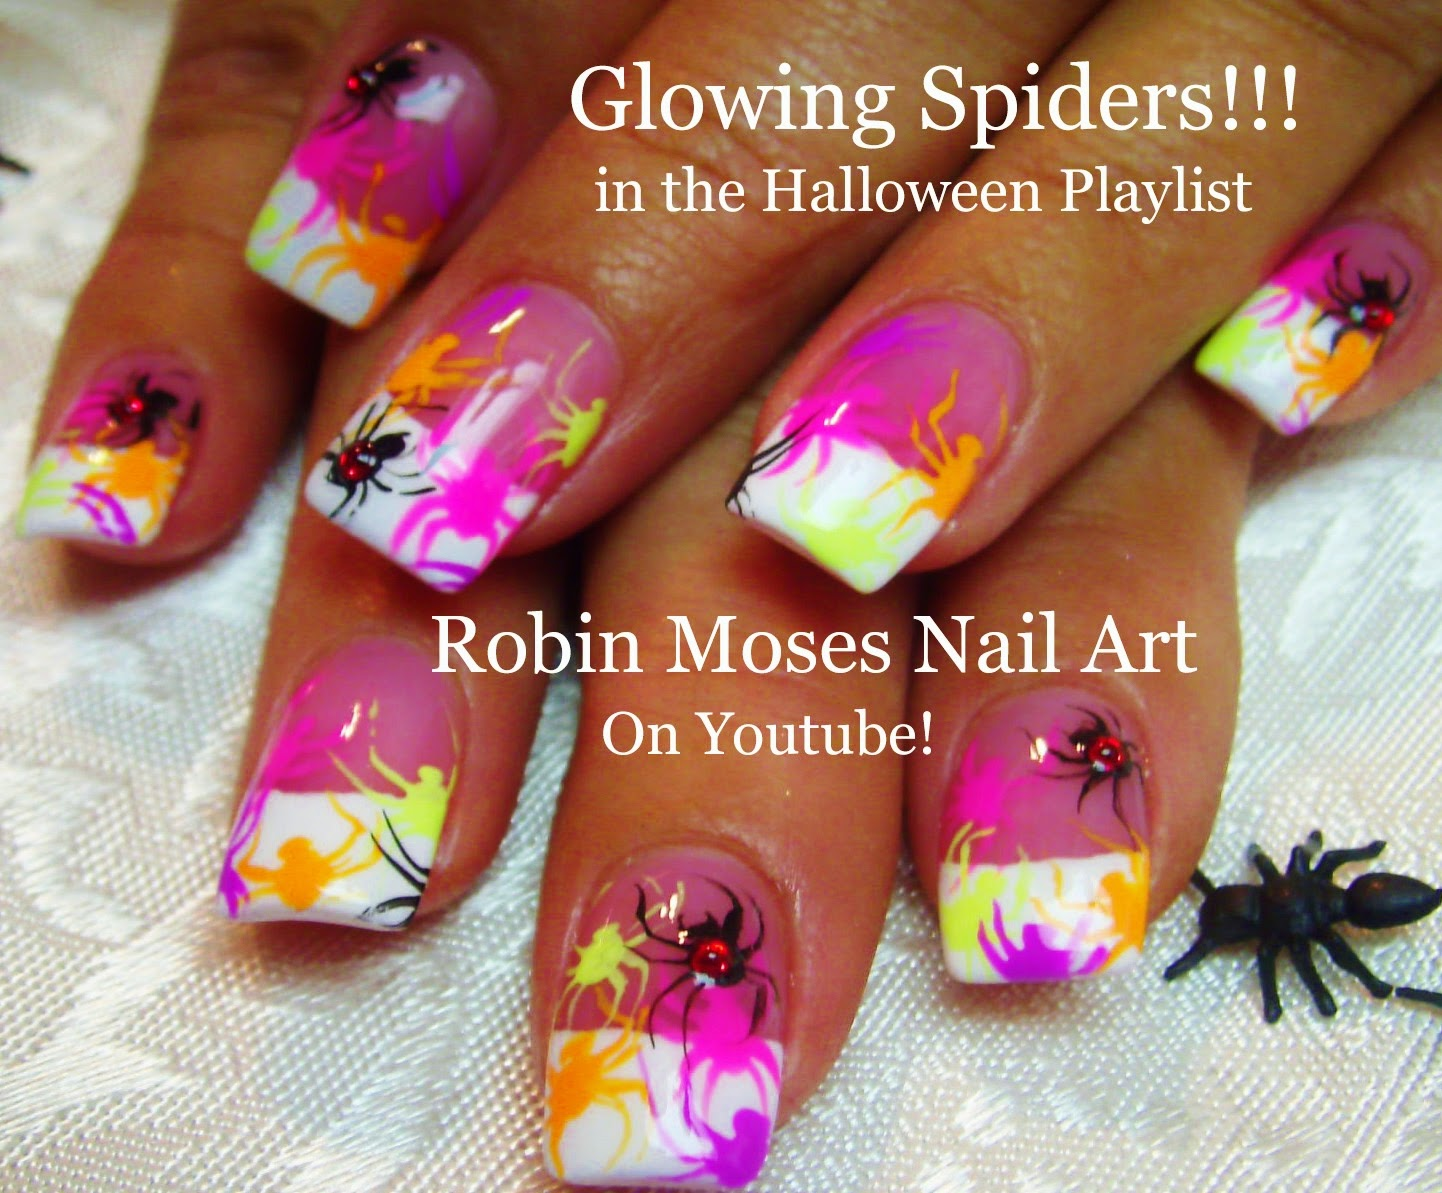 Robin moses nail art grim reaper nails halloween nail art nail art tutorials diy easy halloween nails halloween nail designs for beginners and up solutioingenieria Choice Image